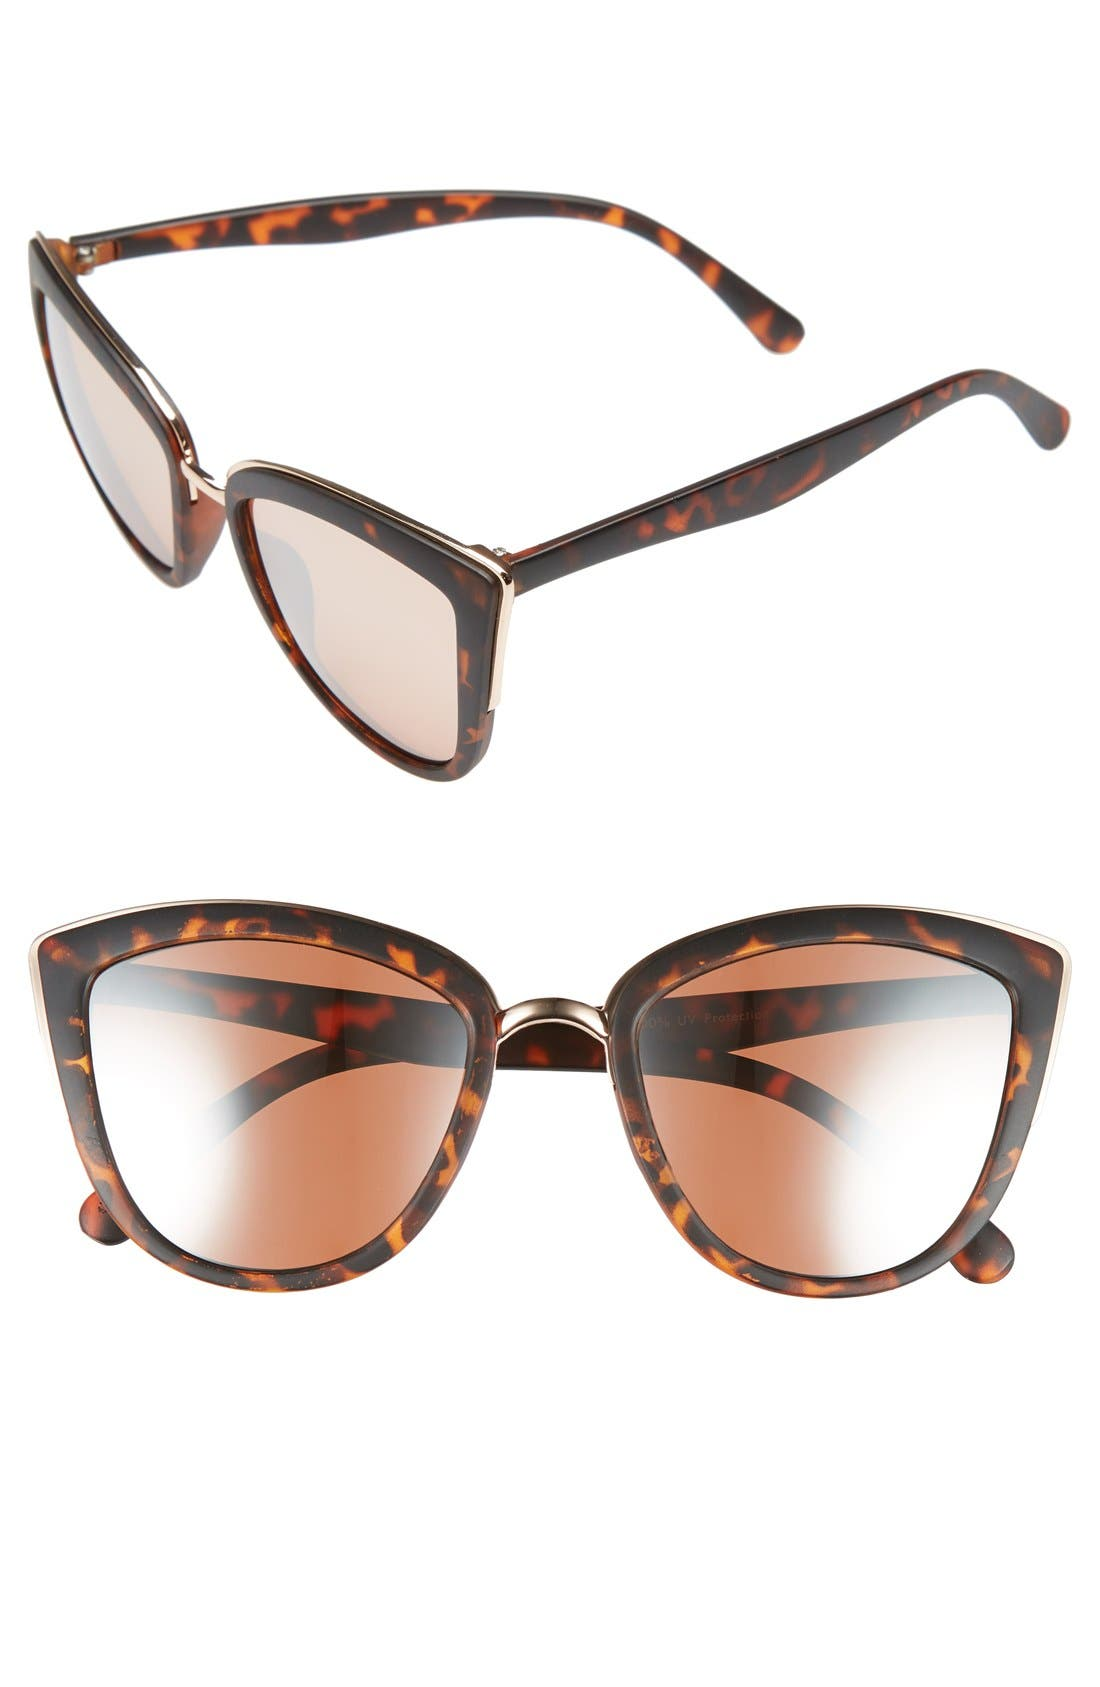 Alternate Image 1 Selected - BP. 55mm Metal Rim Cat Eye Sunglasses